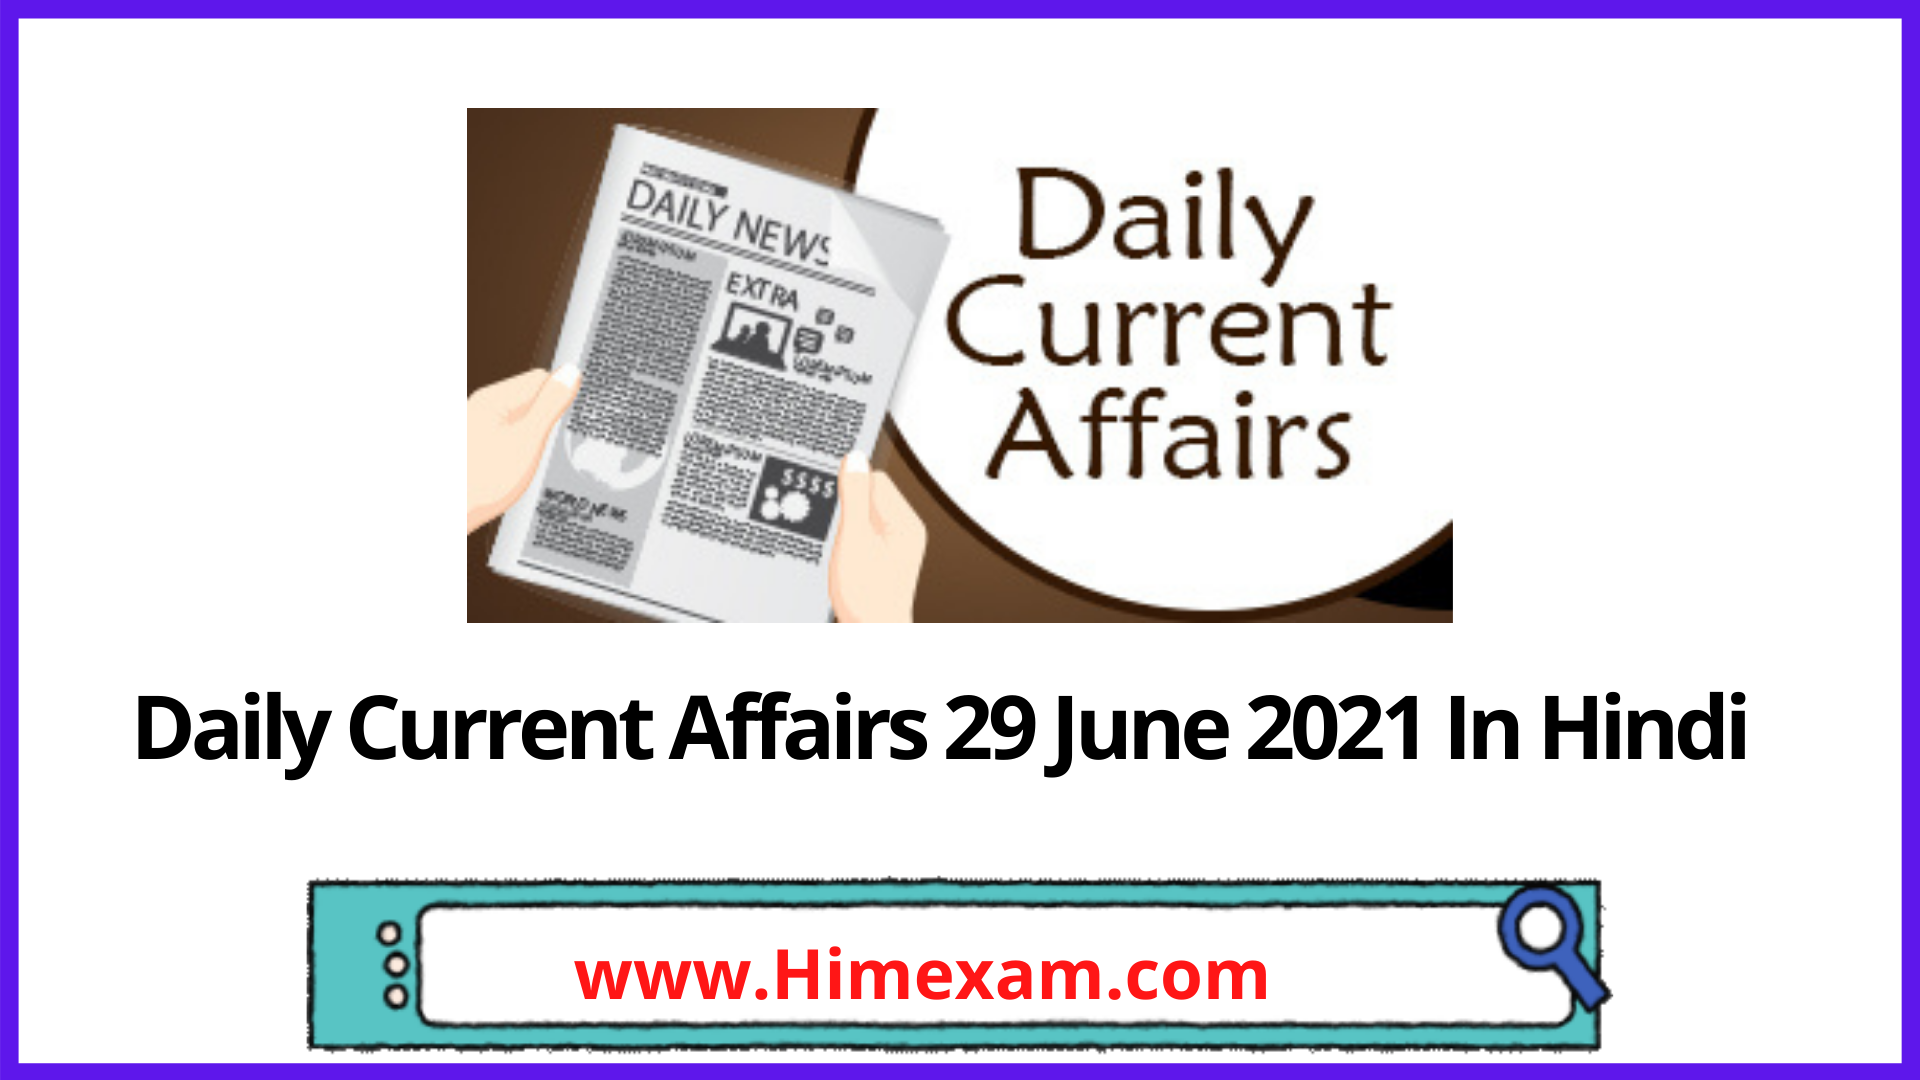 Daily Current Affairs 29 June 2021 In Hindi